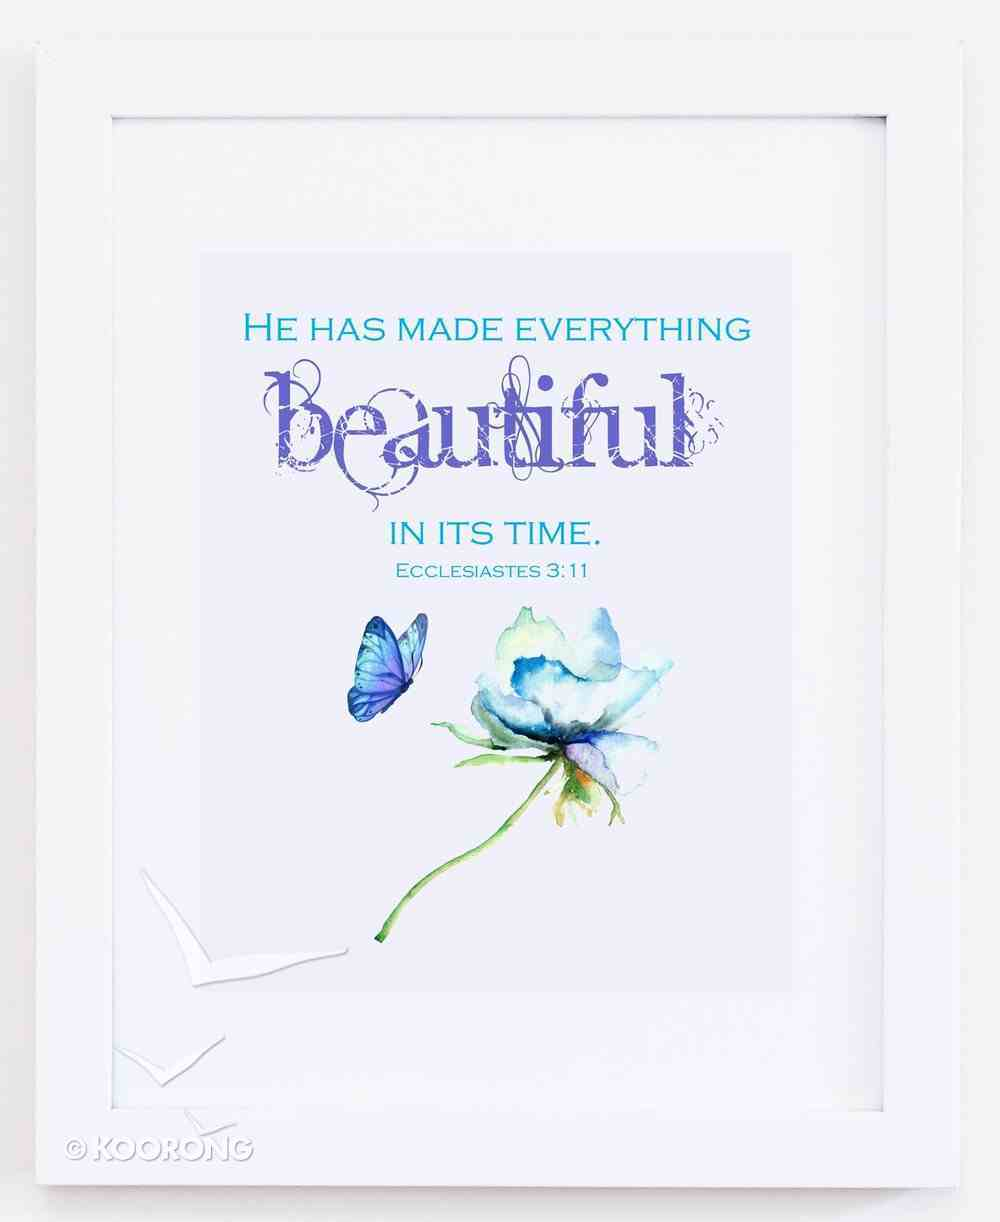 Medium Framed Print: Watercolour Flower With Butterfly - He Has Made Everything Beautiful Ecclesiastes 3:11 Plaque